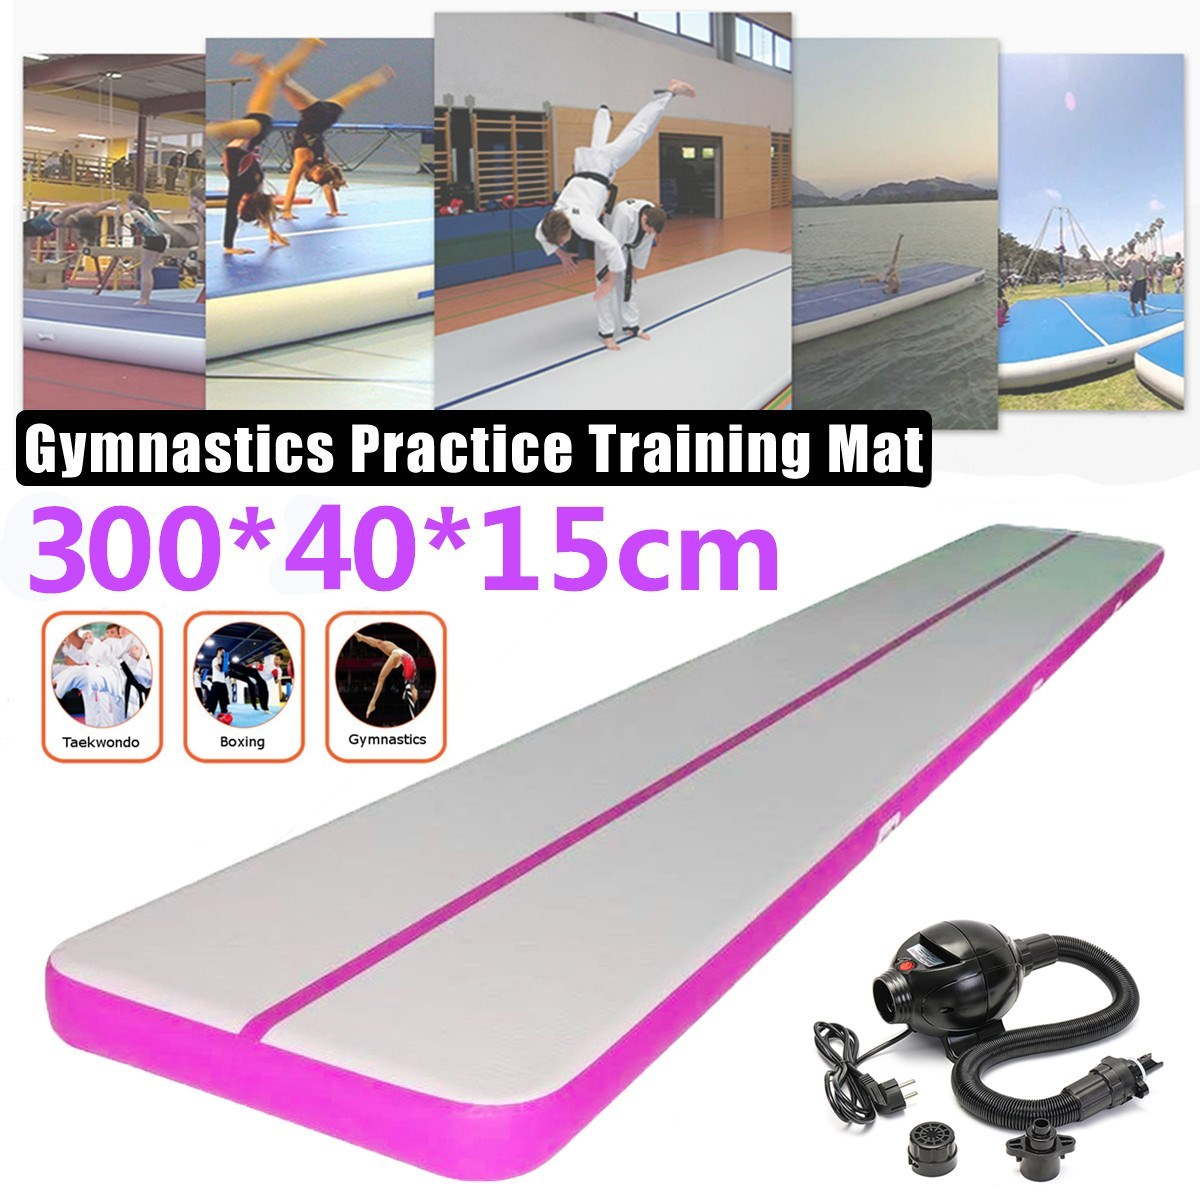 300*40*15 cm gonflable flottant Airtrack tapis de gymnastique Air Tumbling gonflable GYM Air piste tapis